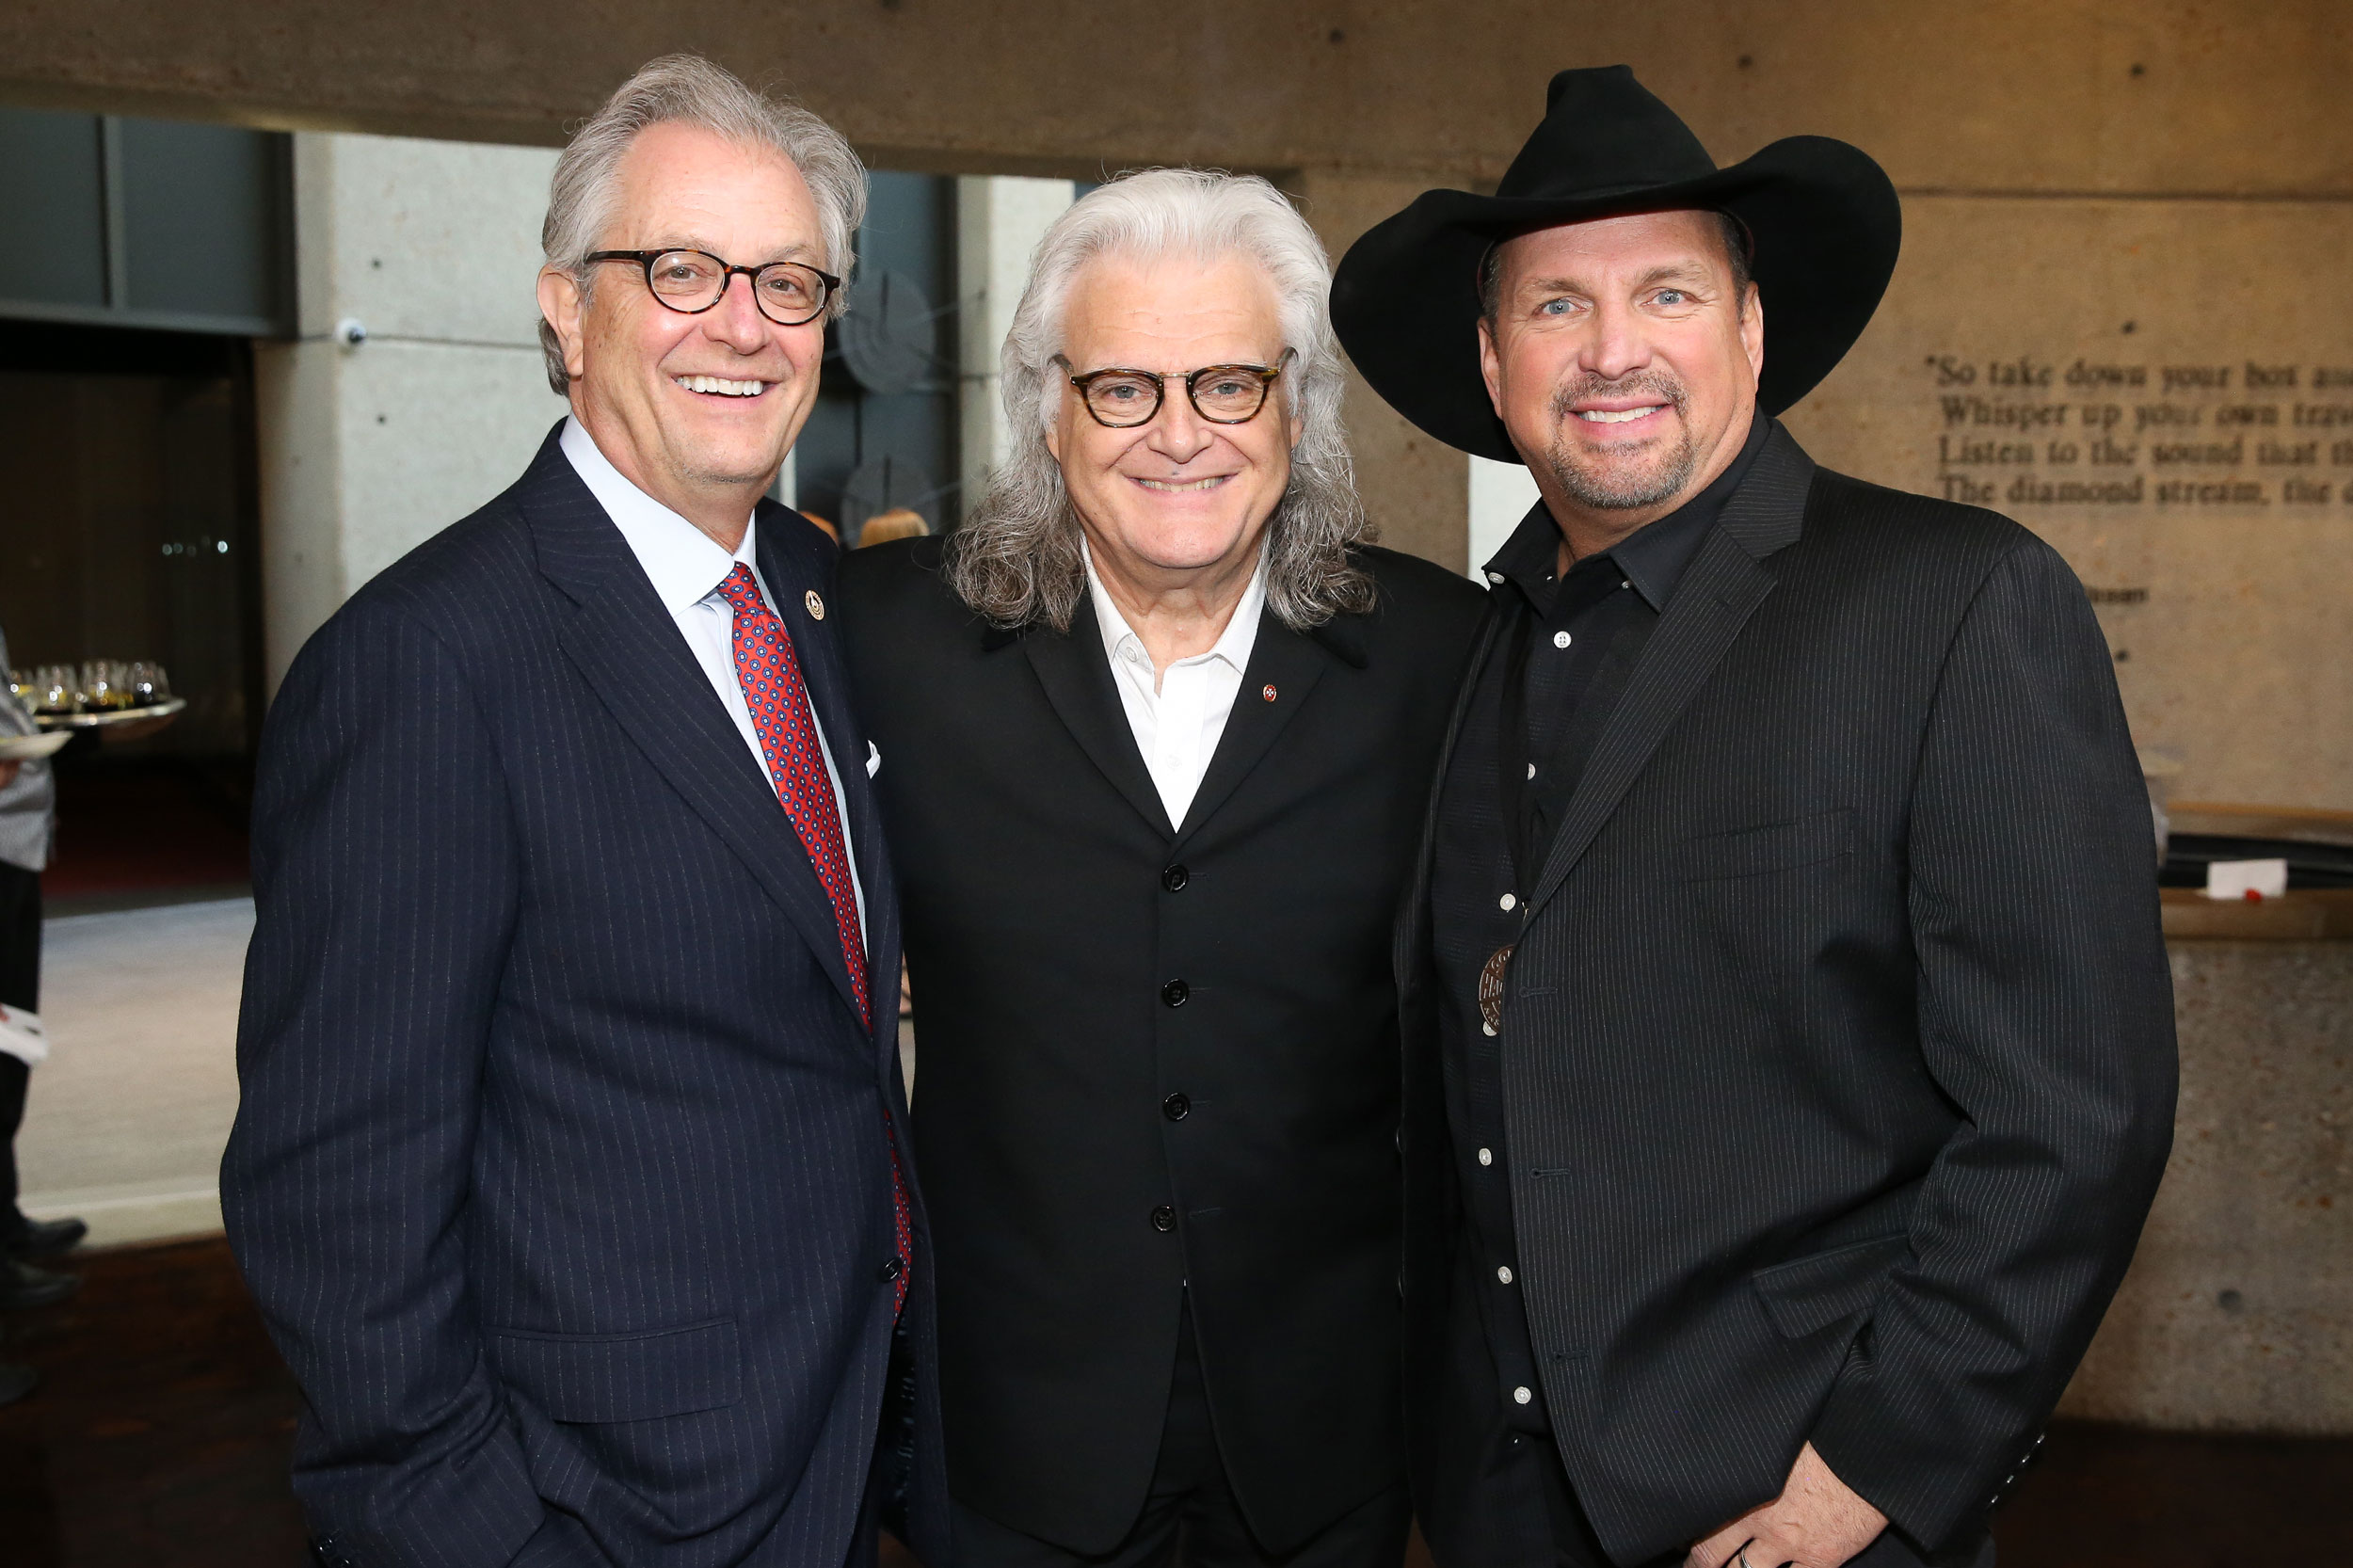 Kyle Young•Ricky Skaggs•Garth Brooks